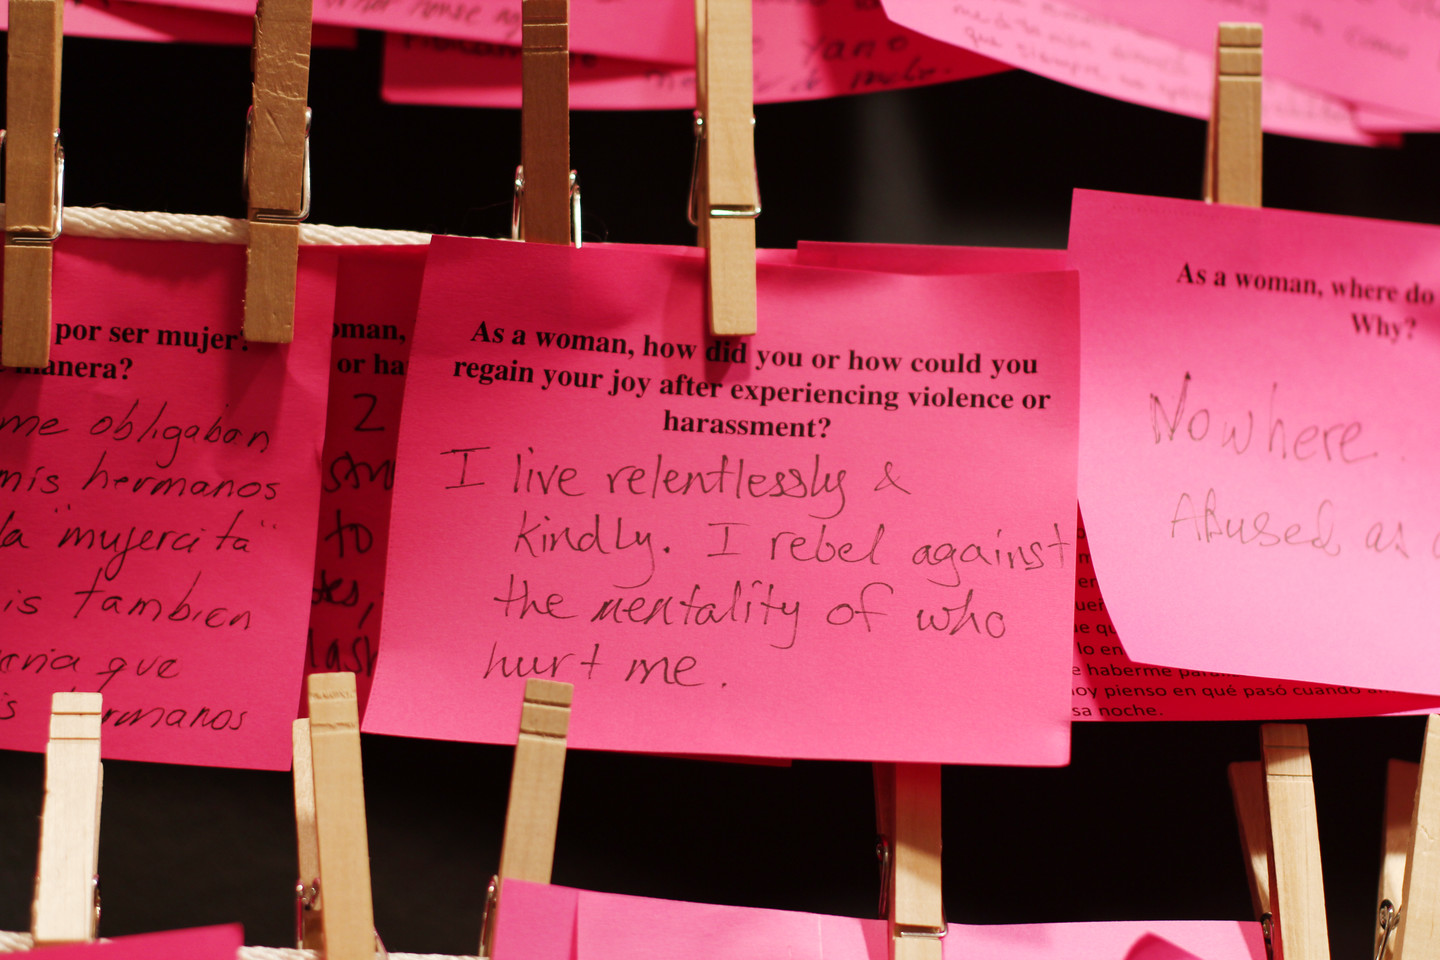 Multiple pink post-it notes hung on a clothesline with clothespins. There is a handwritten note in response to a typed question about regaining joy. The response is